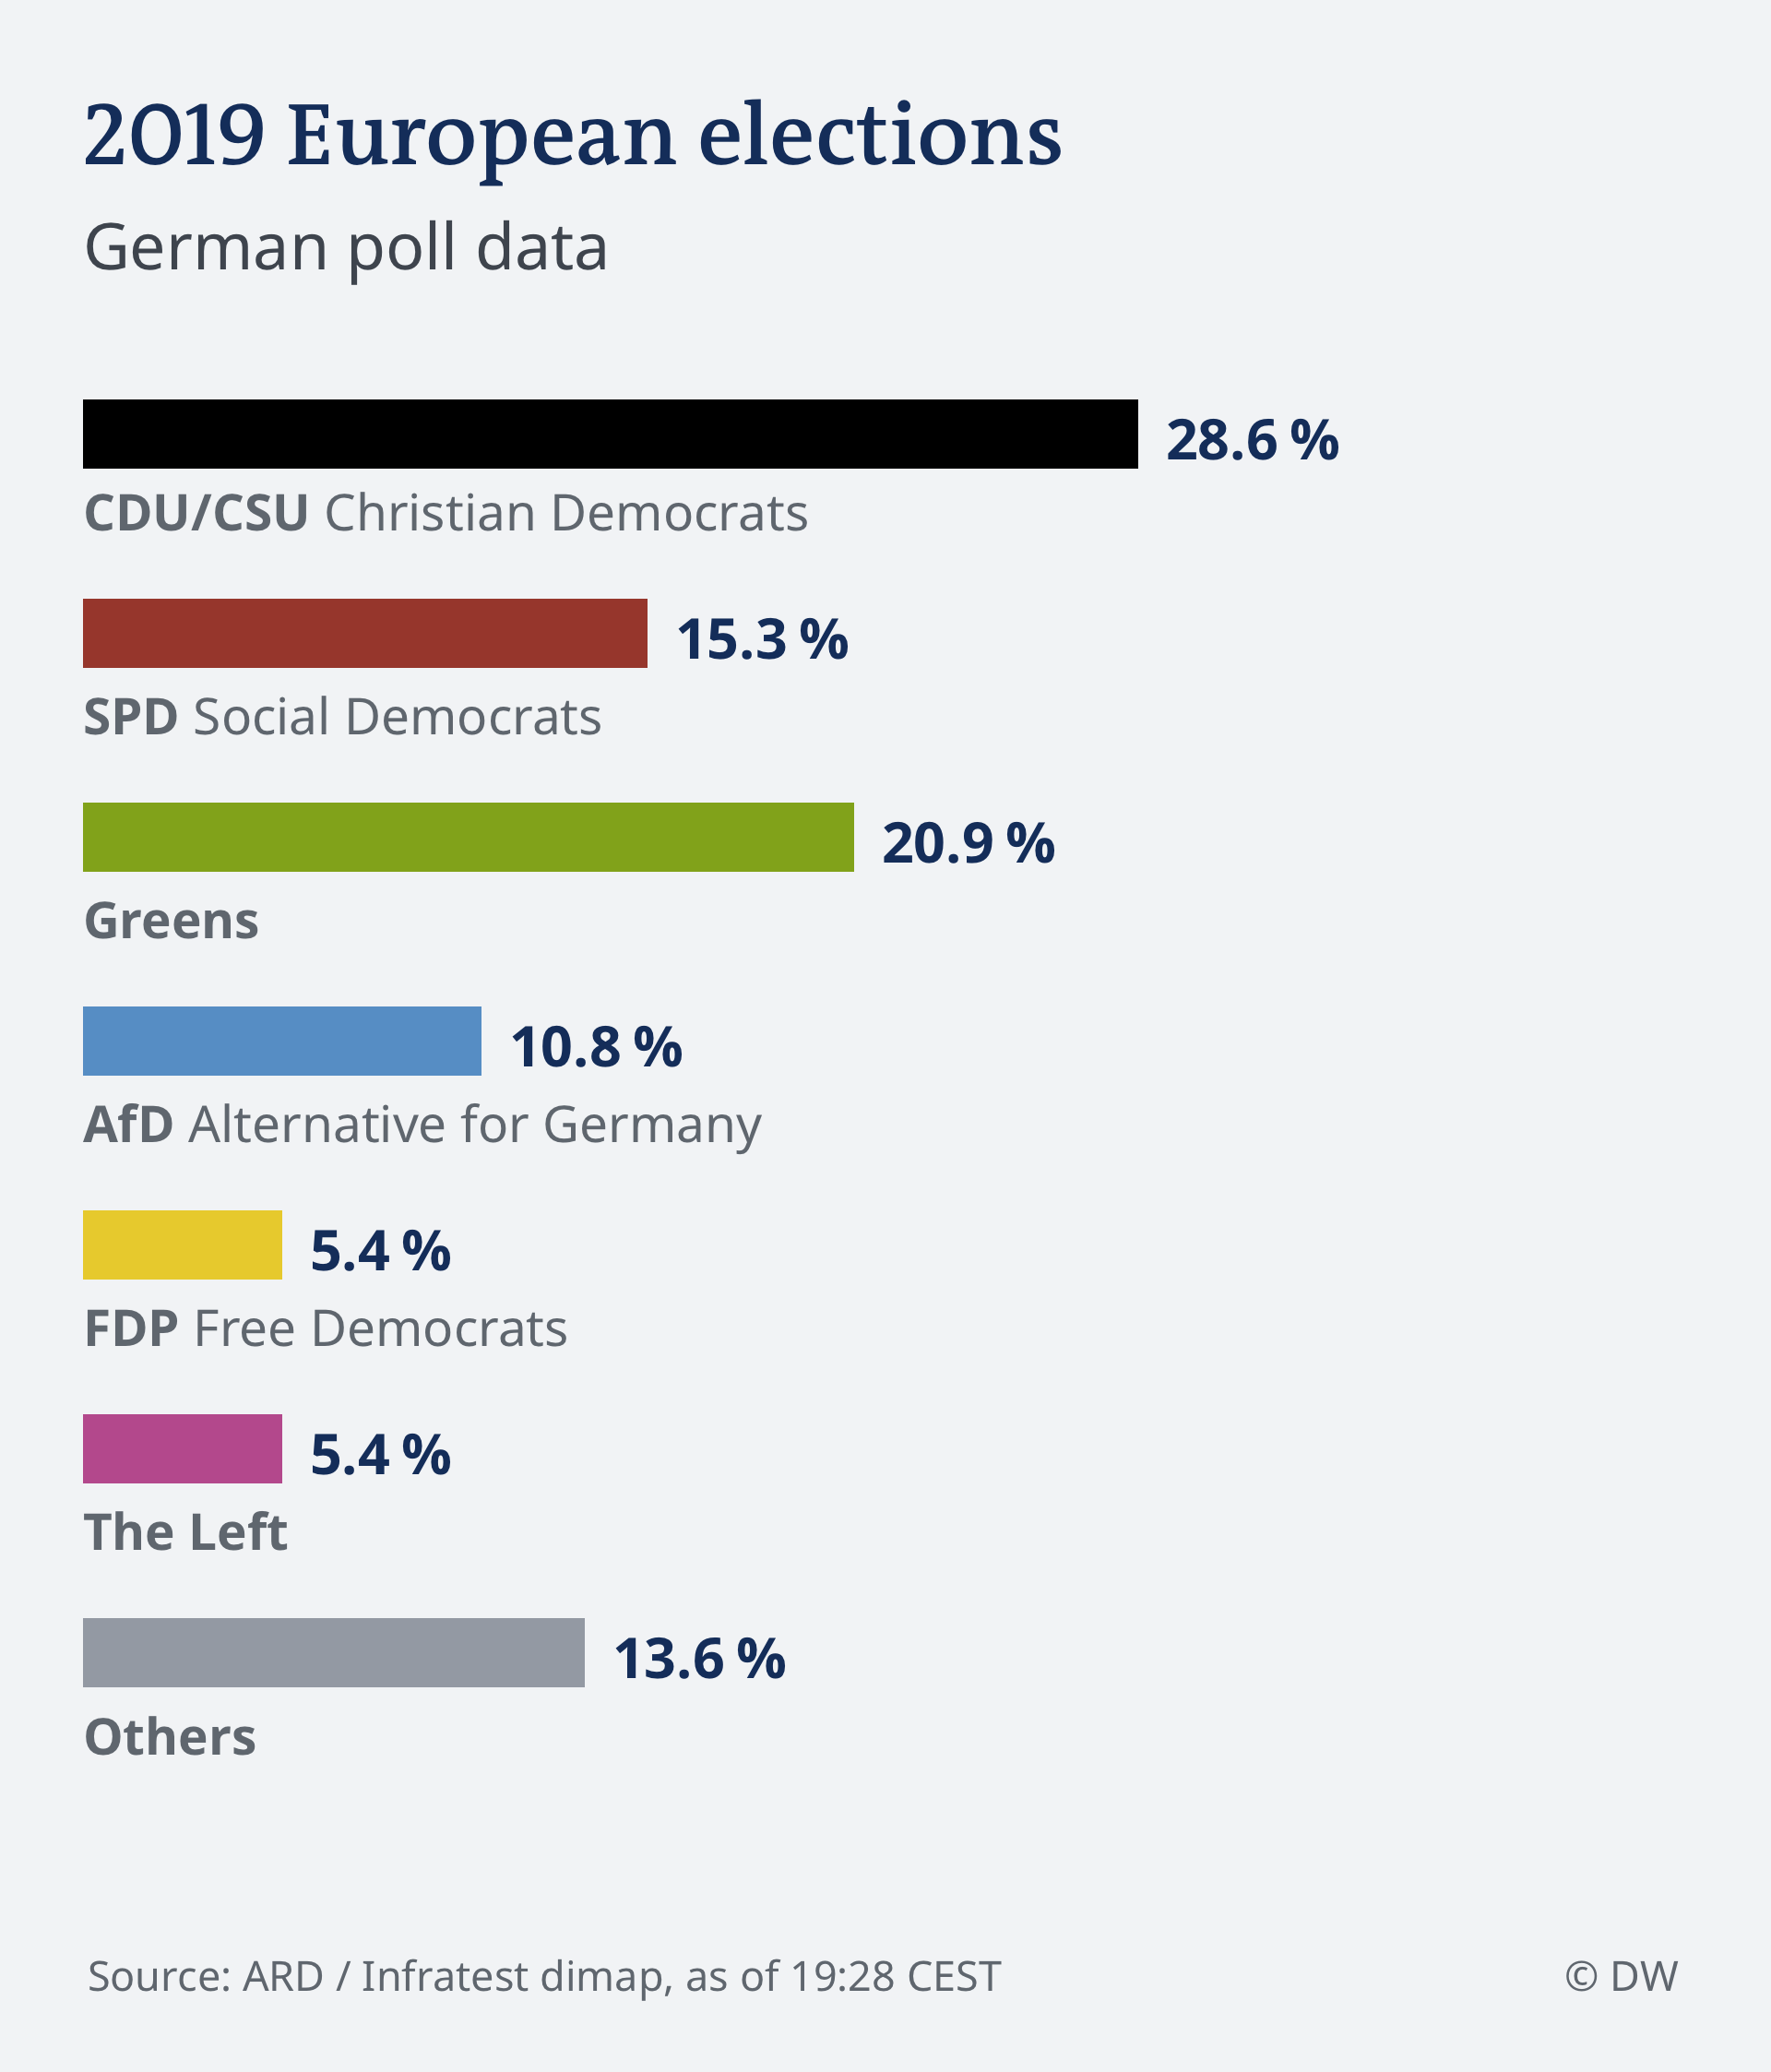 Infografik HOCHRECHNUNG 19.28 EU Select 2019 - Deutschland ENG [19659009] 18:10 </strong> In Spain, pollsters said that the Socialist party was in the lead. It looked set to win 18 seats, up from 14 in 2014, while the far-right Vox was seen getting its first EU lawmakers, with four to five seats. </p> <p> <strong> 18:01 </strong> French exit polls put the far-right RN party at 23%, a slight drop from 2014, but still enough to put them in the lead. President Emmanuel Macron's And March got 22%, and the Green party garnished 12.5%, increasing 3.5 point in 2014. </p><div><script async src=